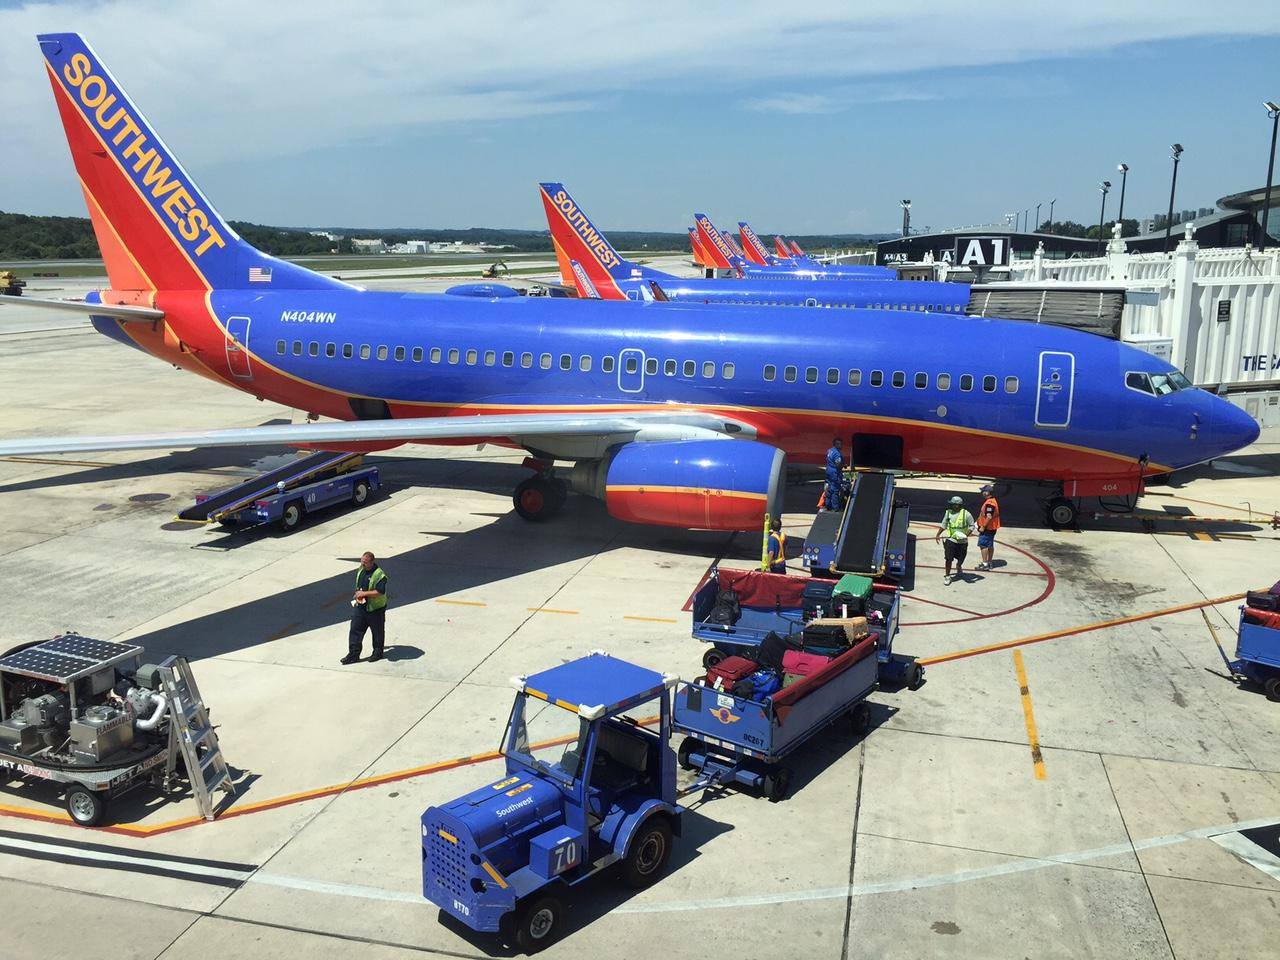 Pickup truck strikes Southwest Airlines plane at BWI